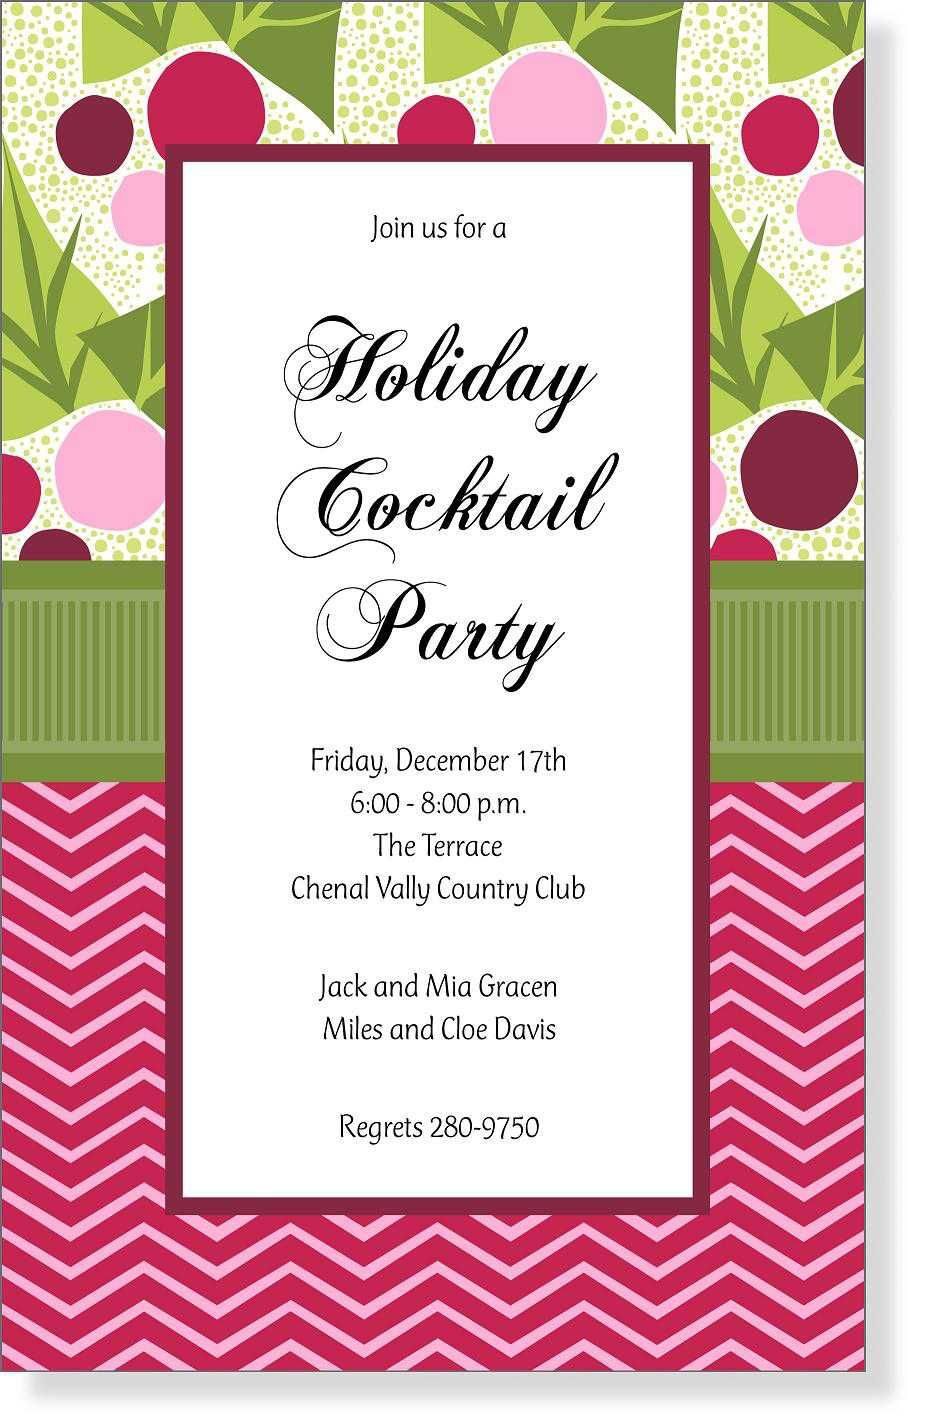 003 Rare Holiday Open House Invitation Template High Definition  Christma Free Printable Wording IdeaFull